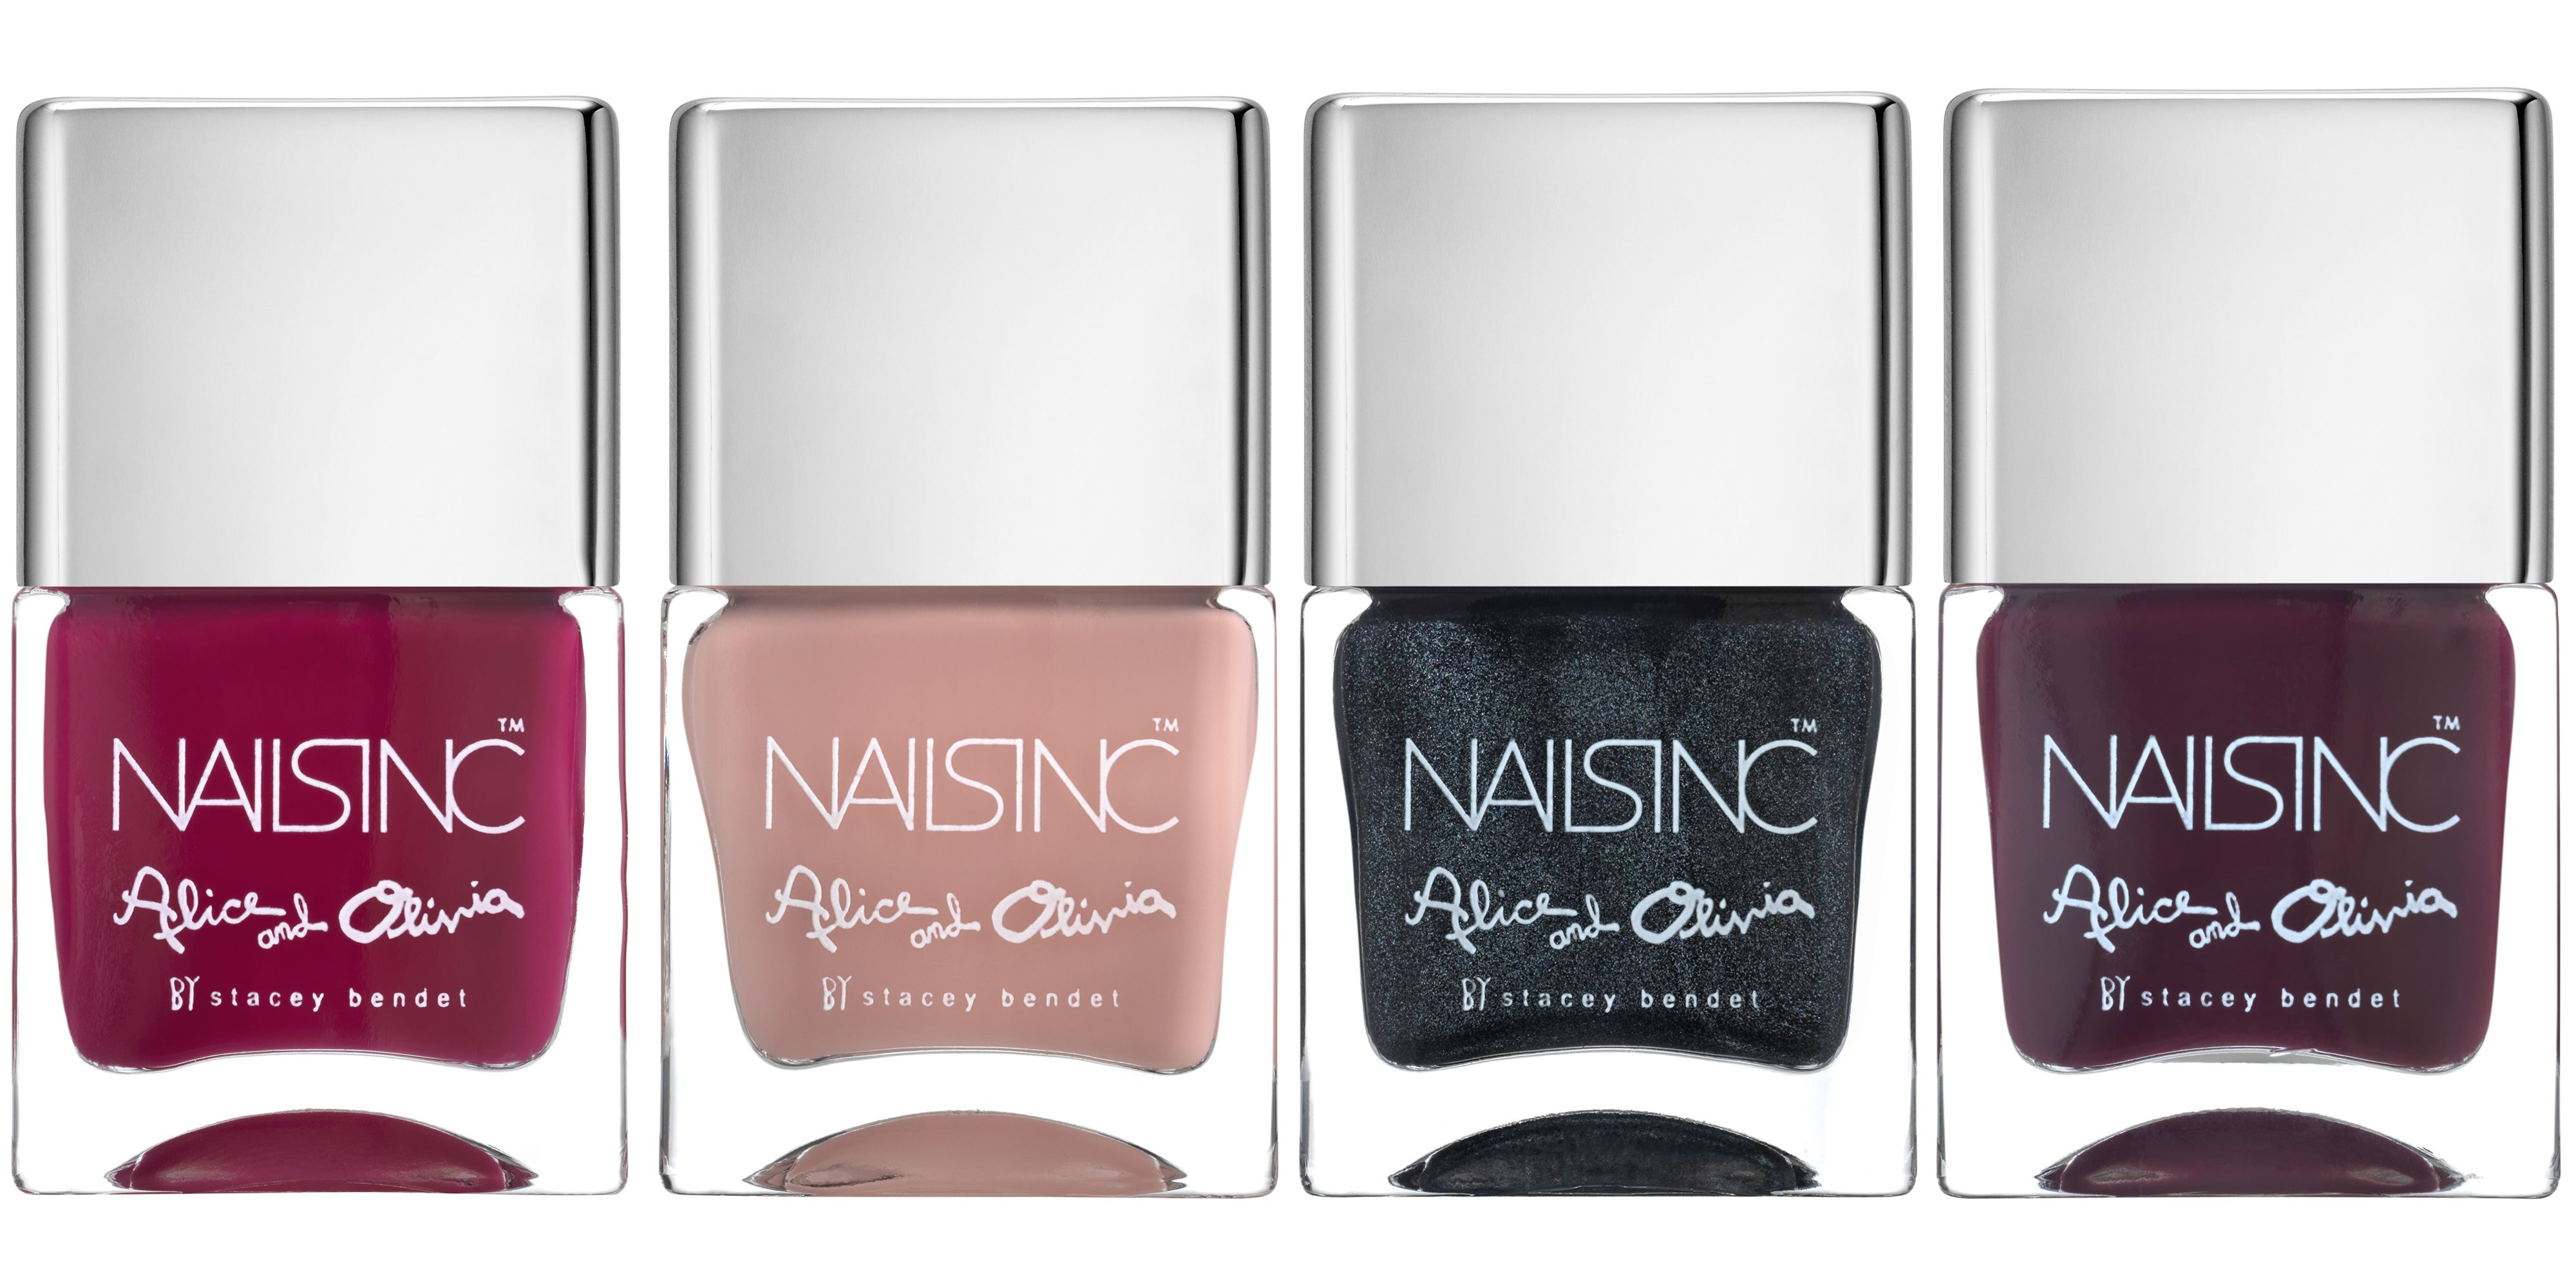 The Latest Must-Have Designer Nail Collab for Fall - Nails Inc and ...